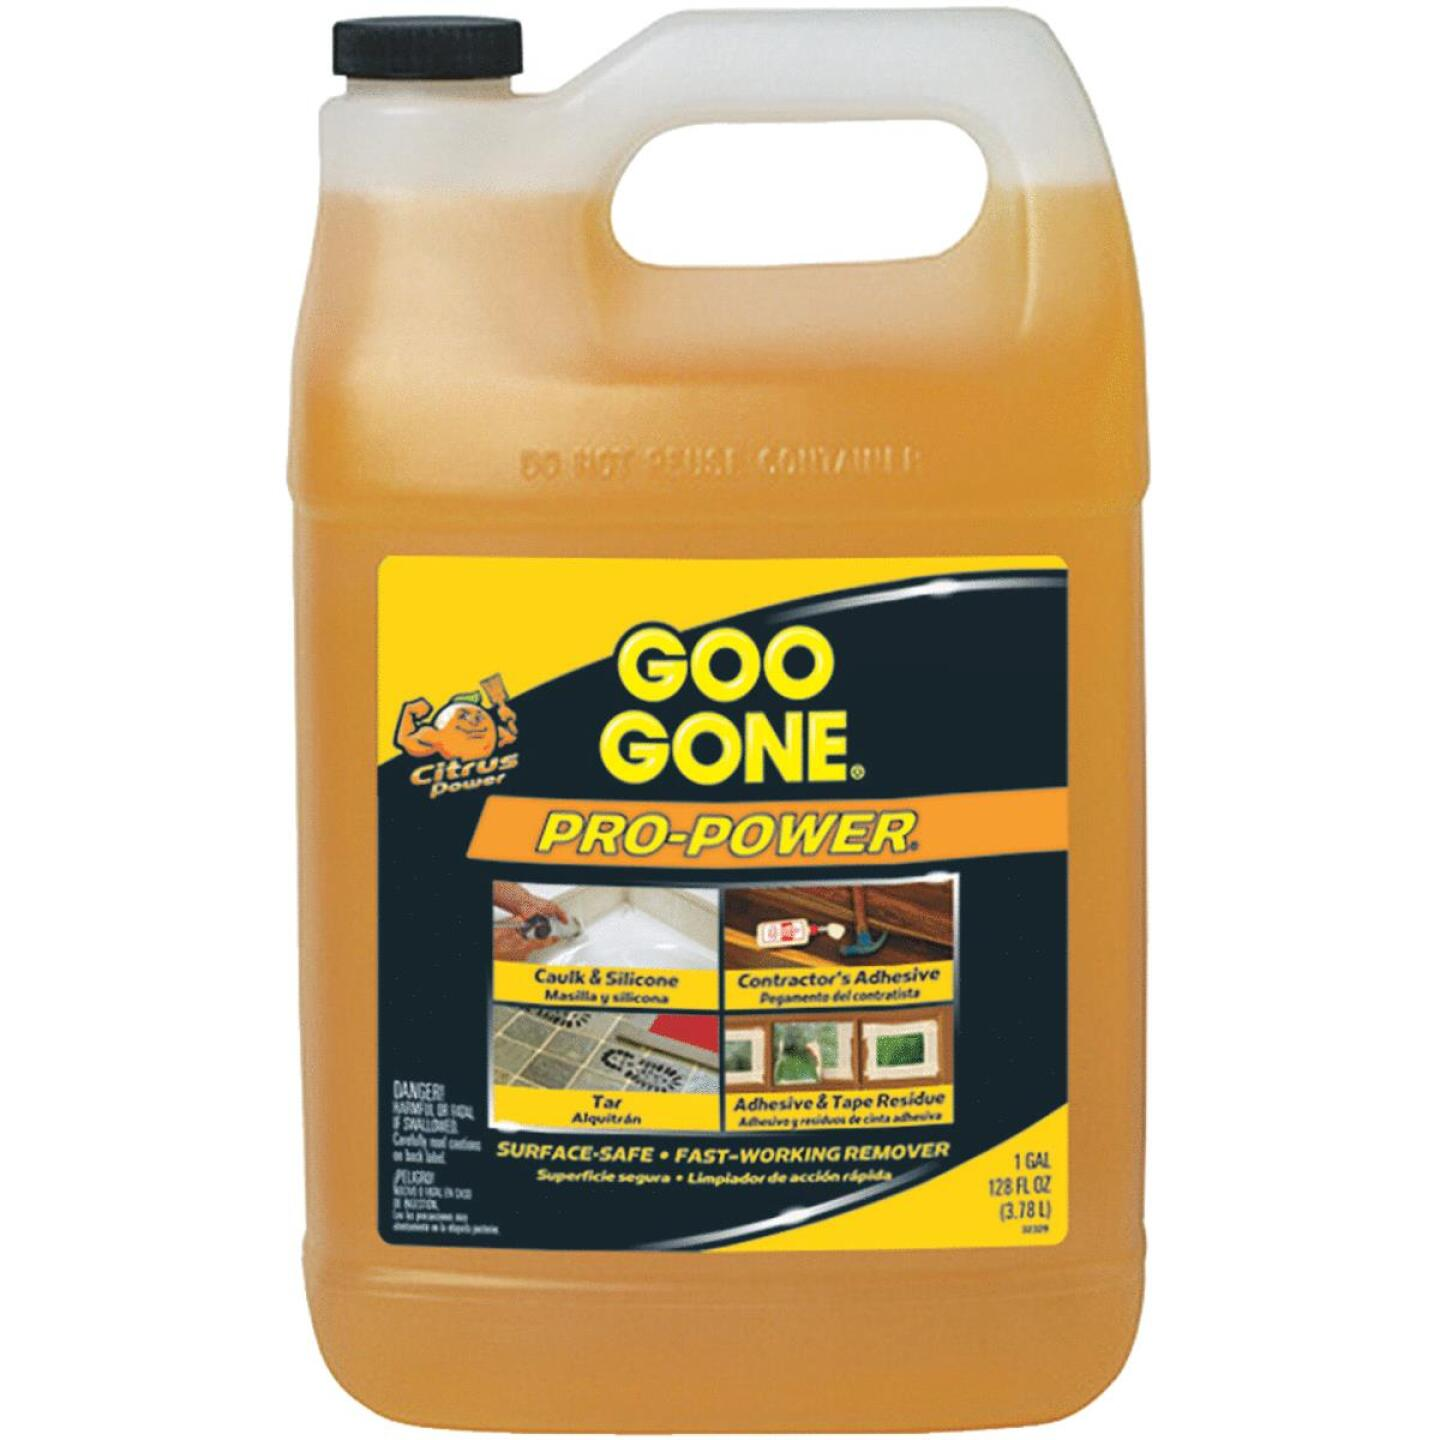 Goo Gone 1 Gal. Pro-Power Adhesive Remover Image 19